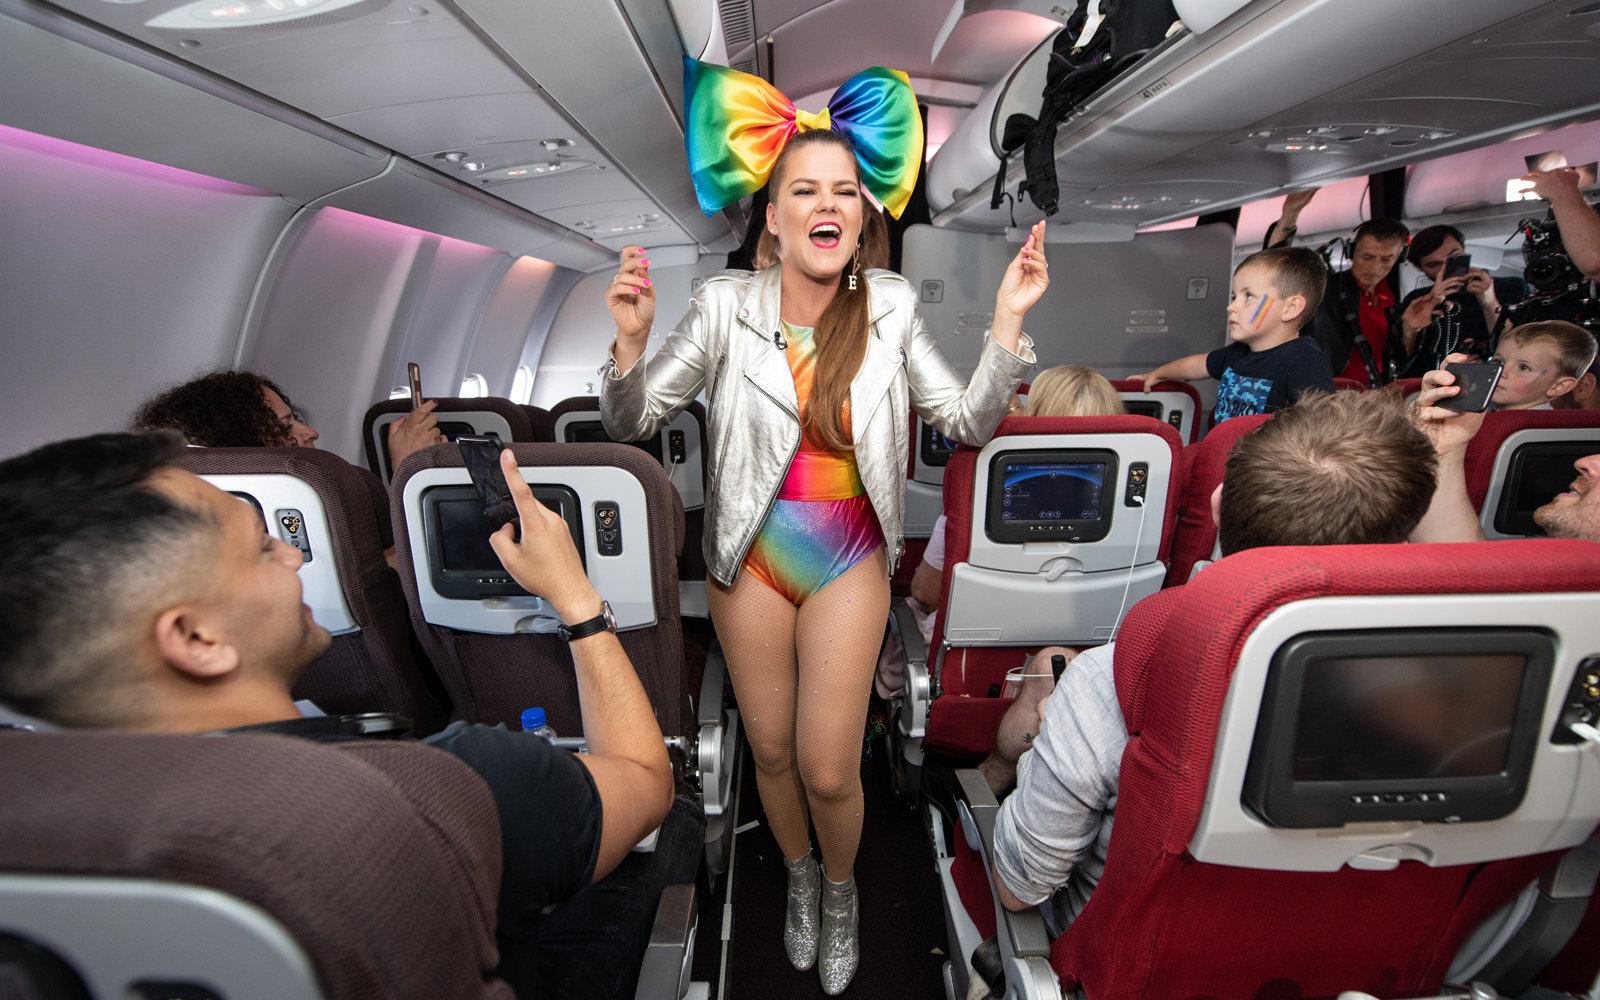 Virgin PRIDE Flight